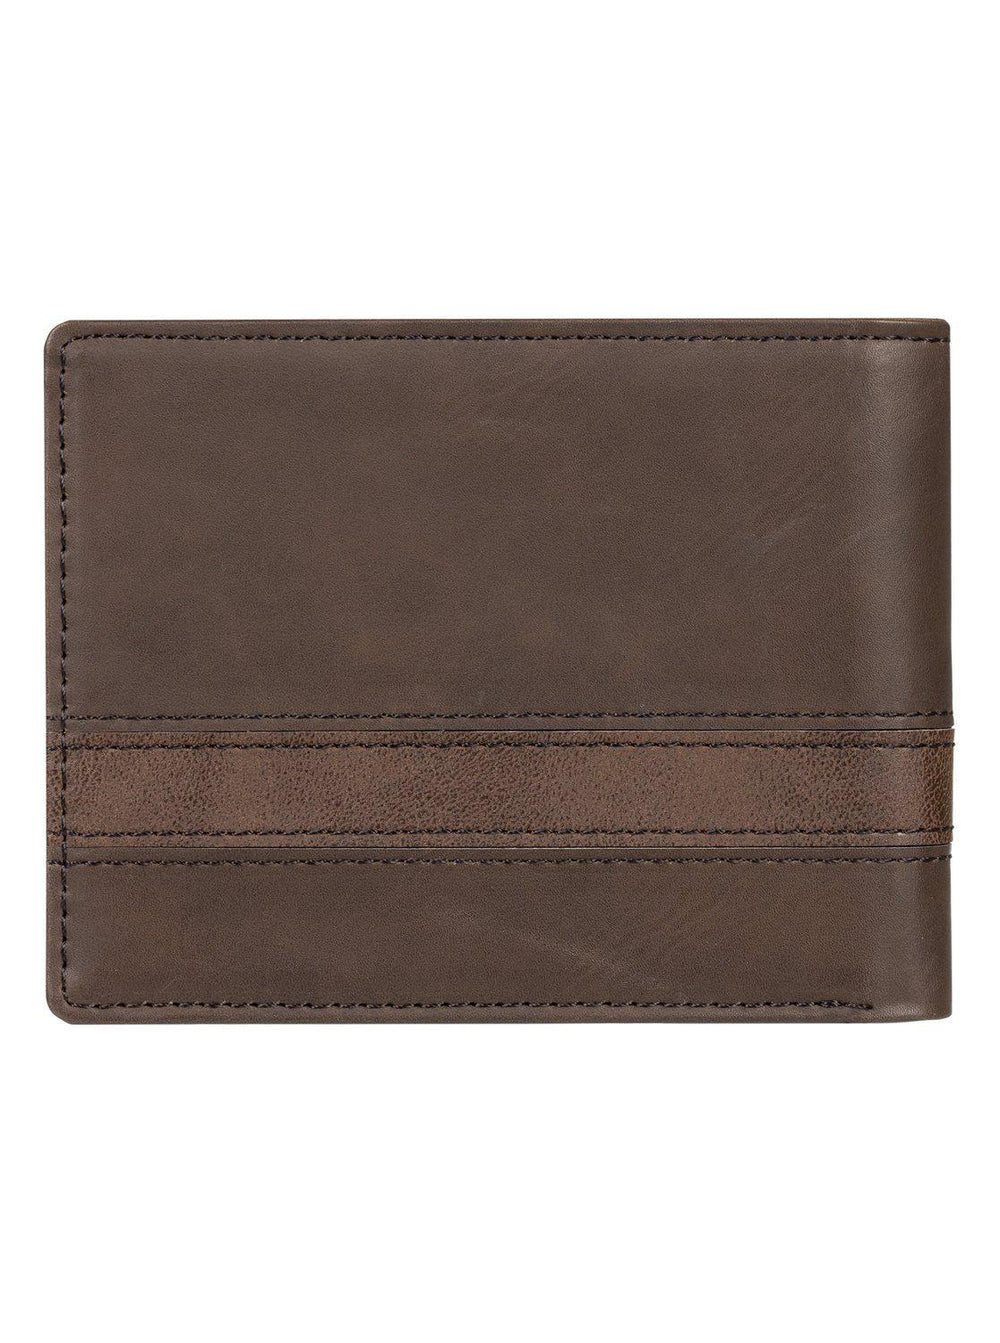 Supply Slim Bi-Fold Wallet Chocolate Brown